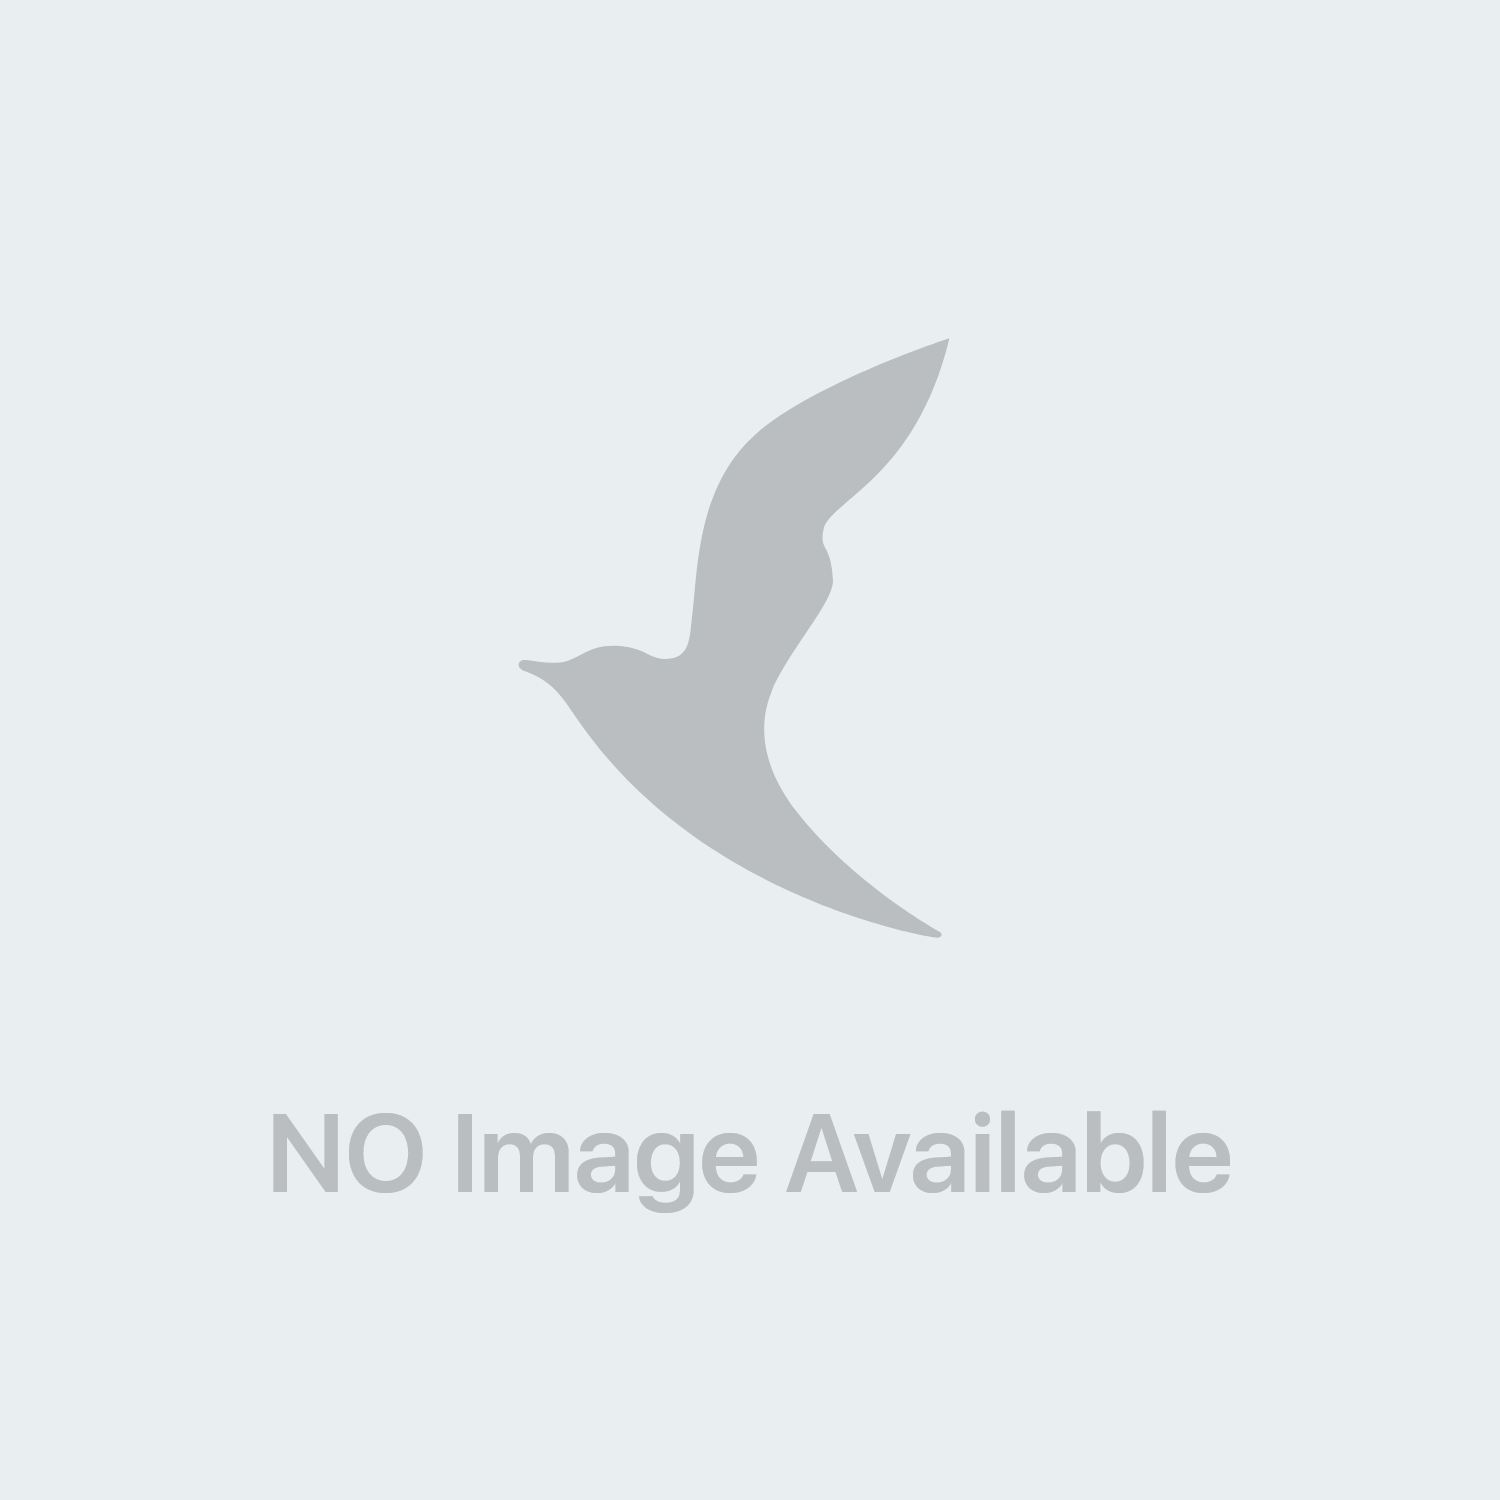 Biomineral Unghie Topico PROMO Emulsione Rinforzante 20 ml